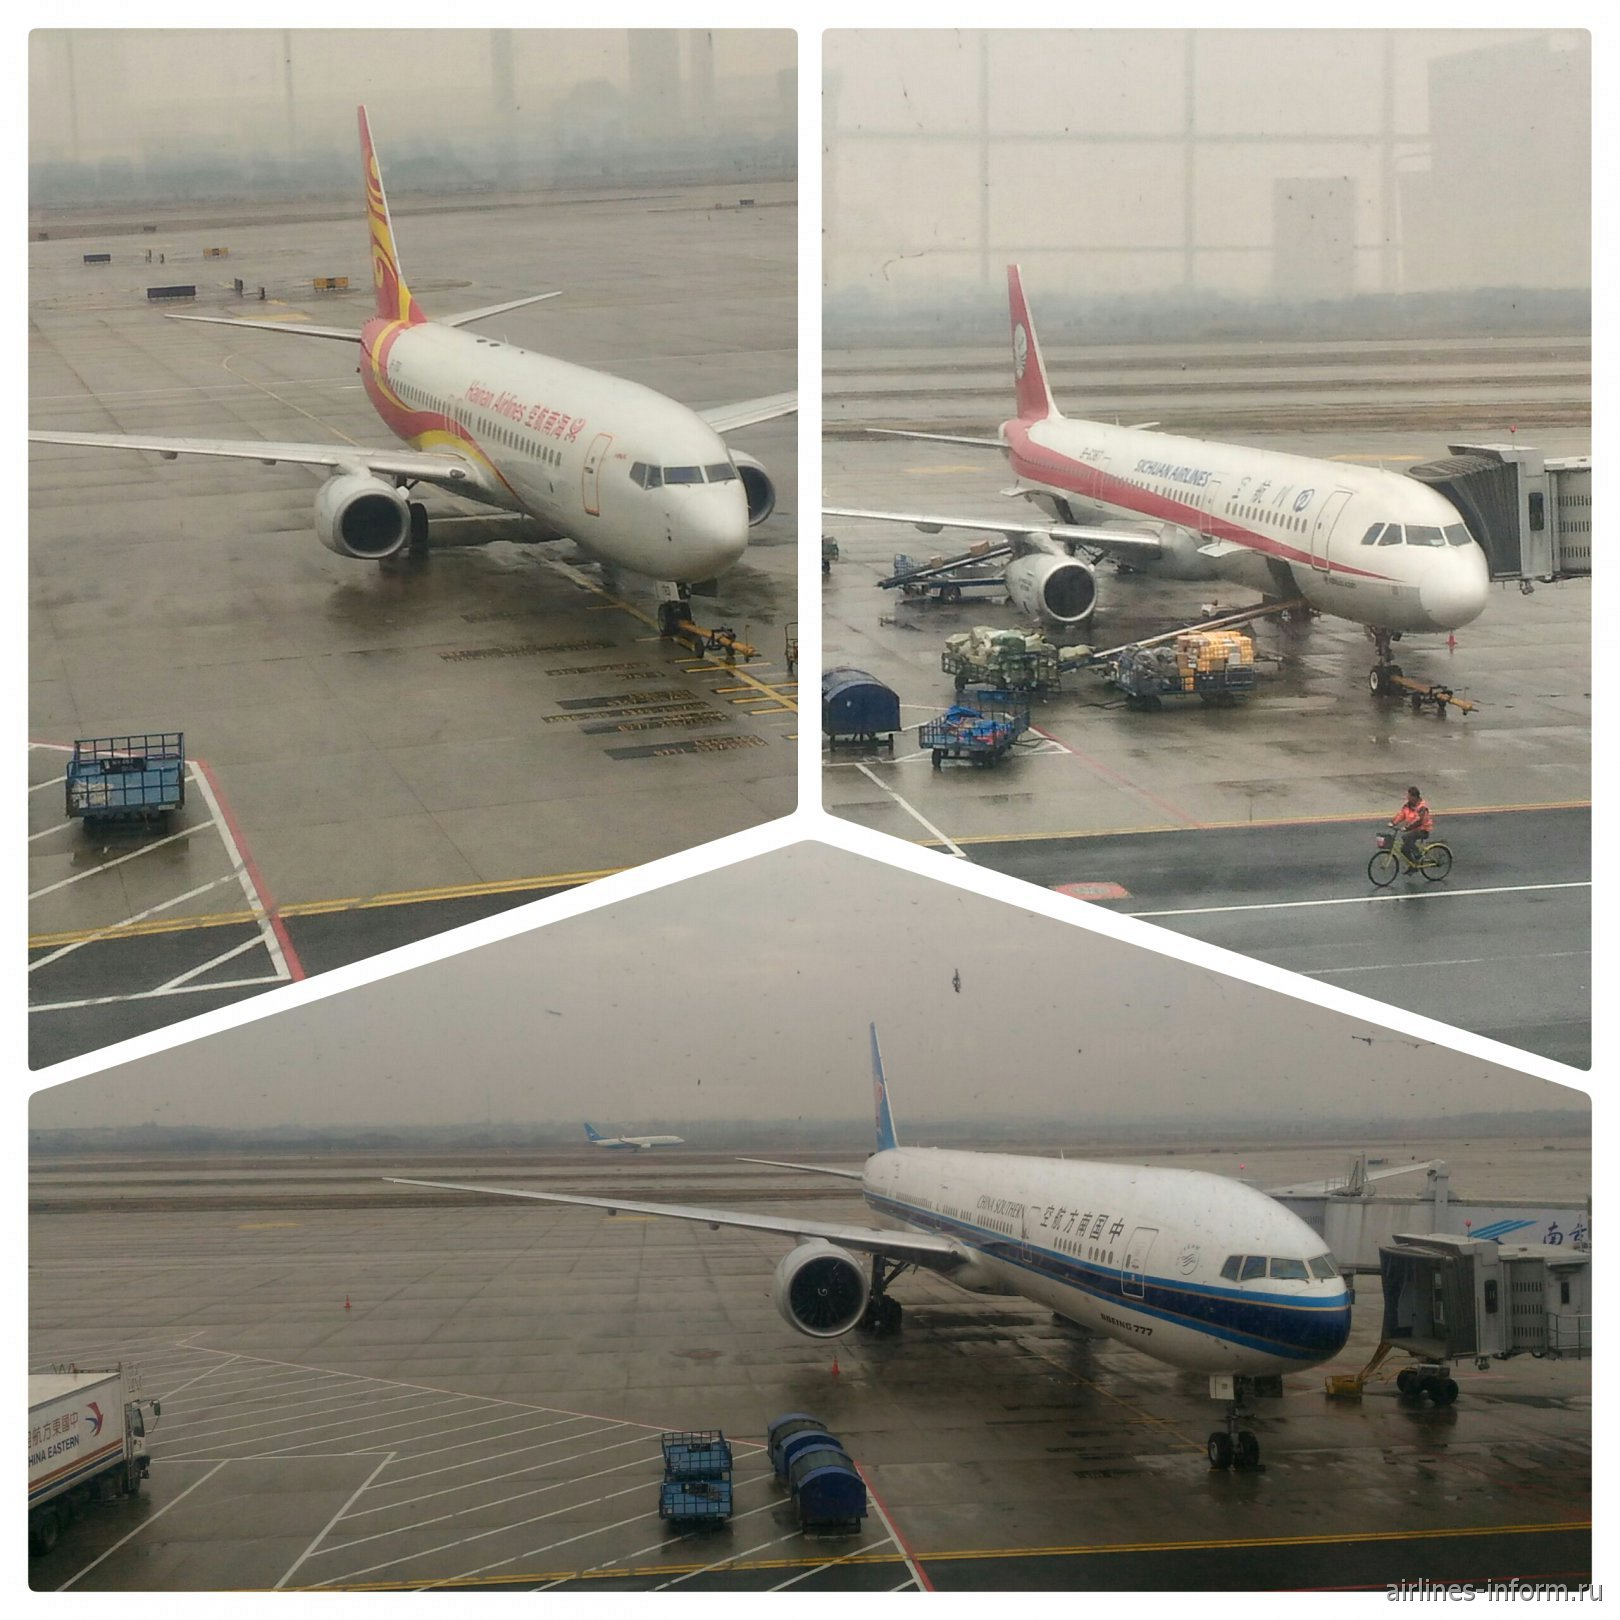 по часовой стрелке: B-737 Hainan Airlines, A321 Sichuan Airlines, B-777-300 China Southern Airlines